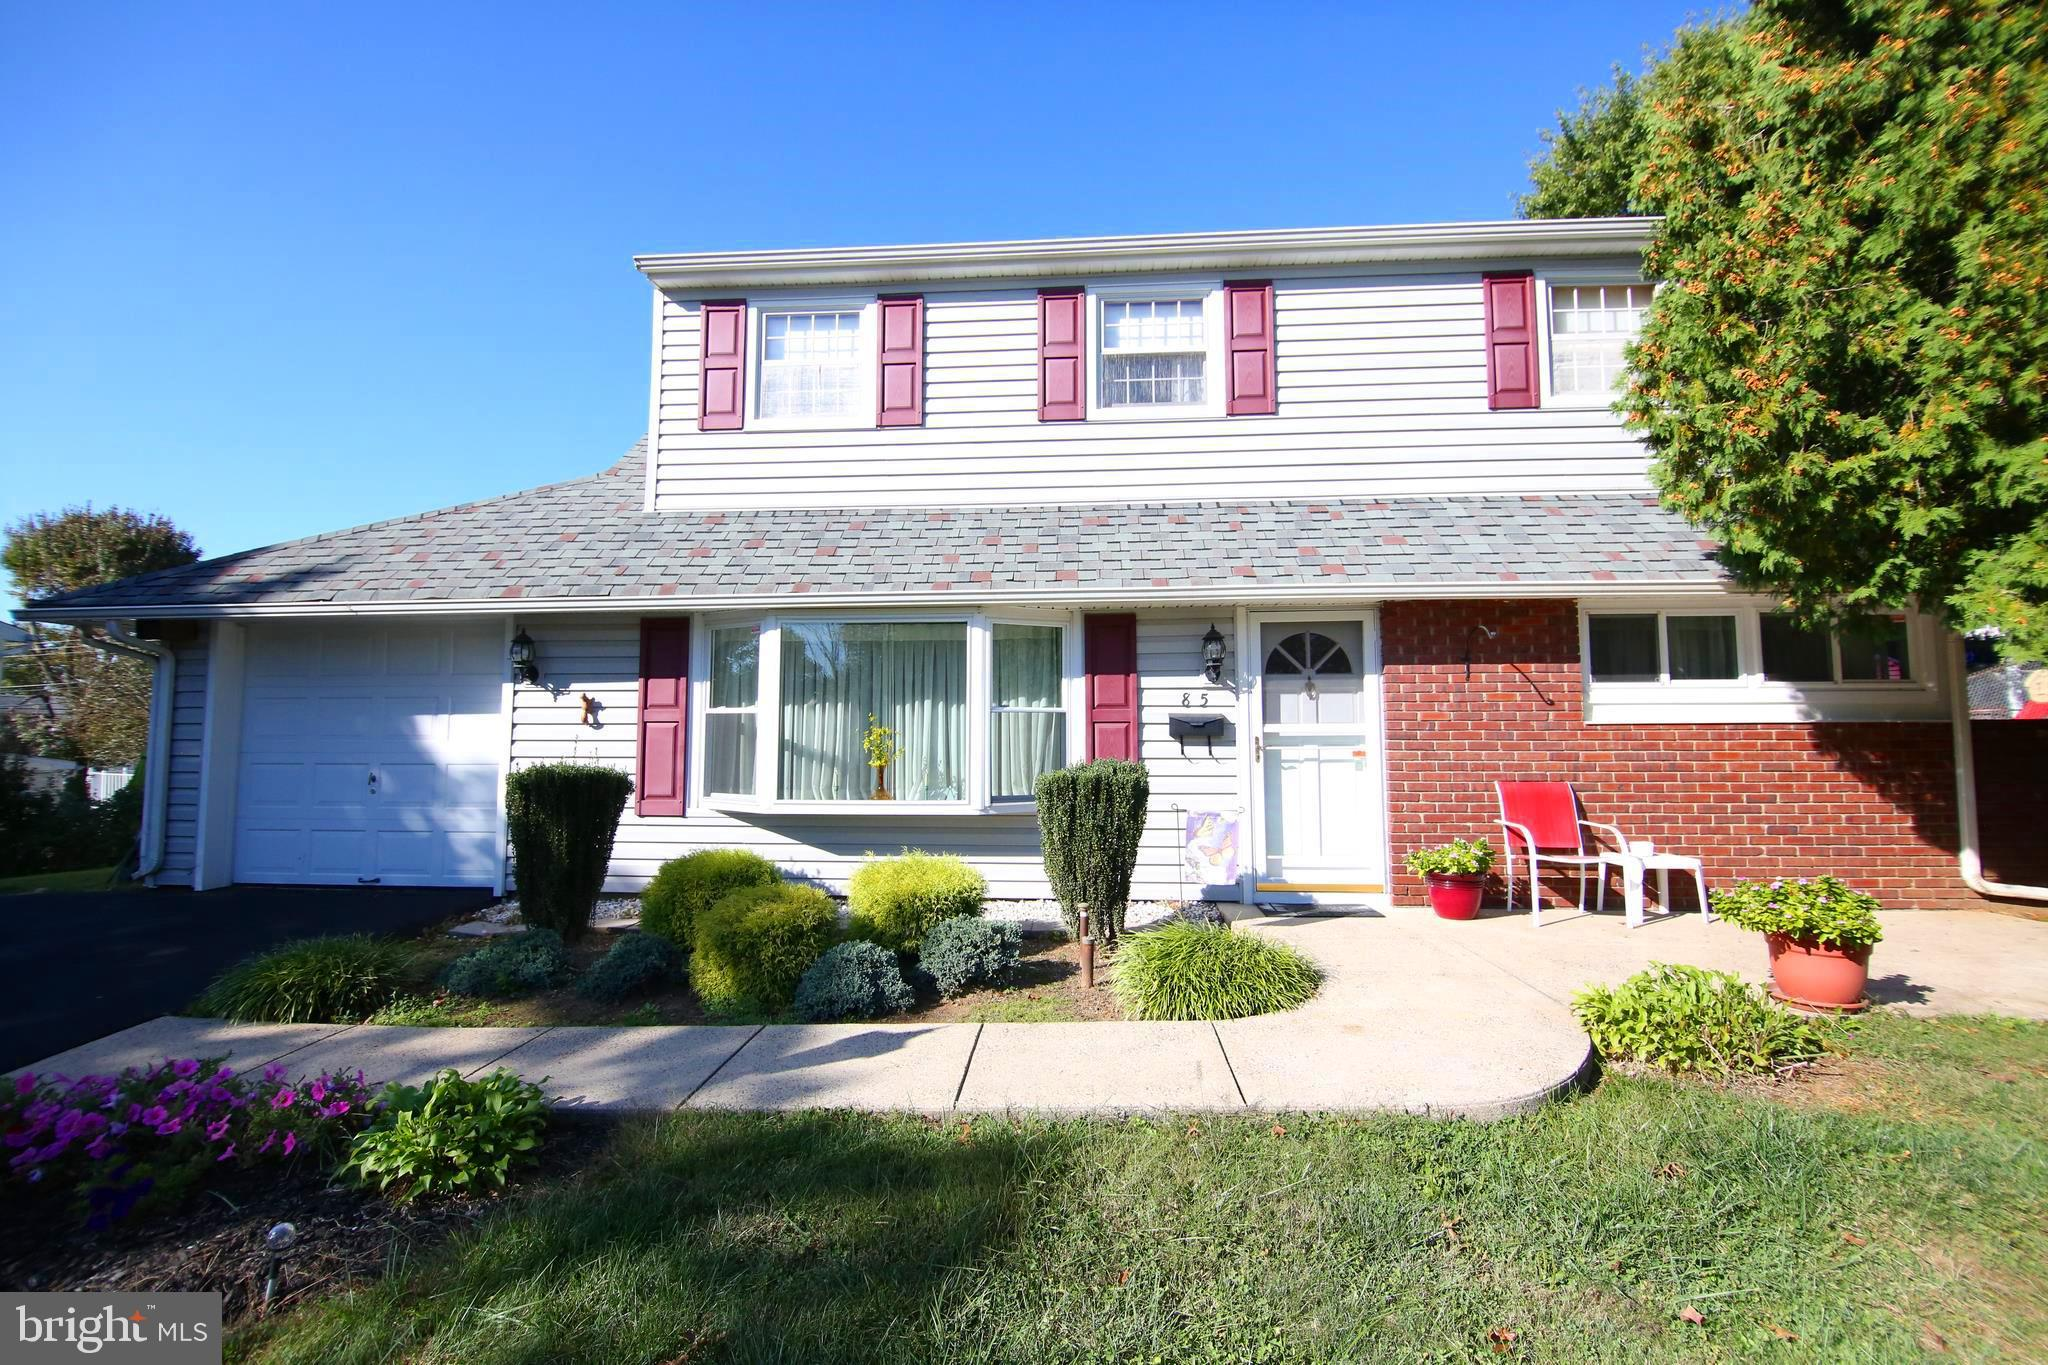 85 COBALT CROSS ROAD, LEVITTOWN, PA 19057